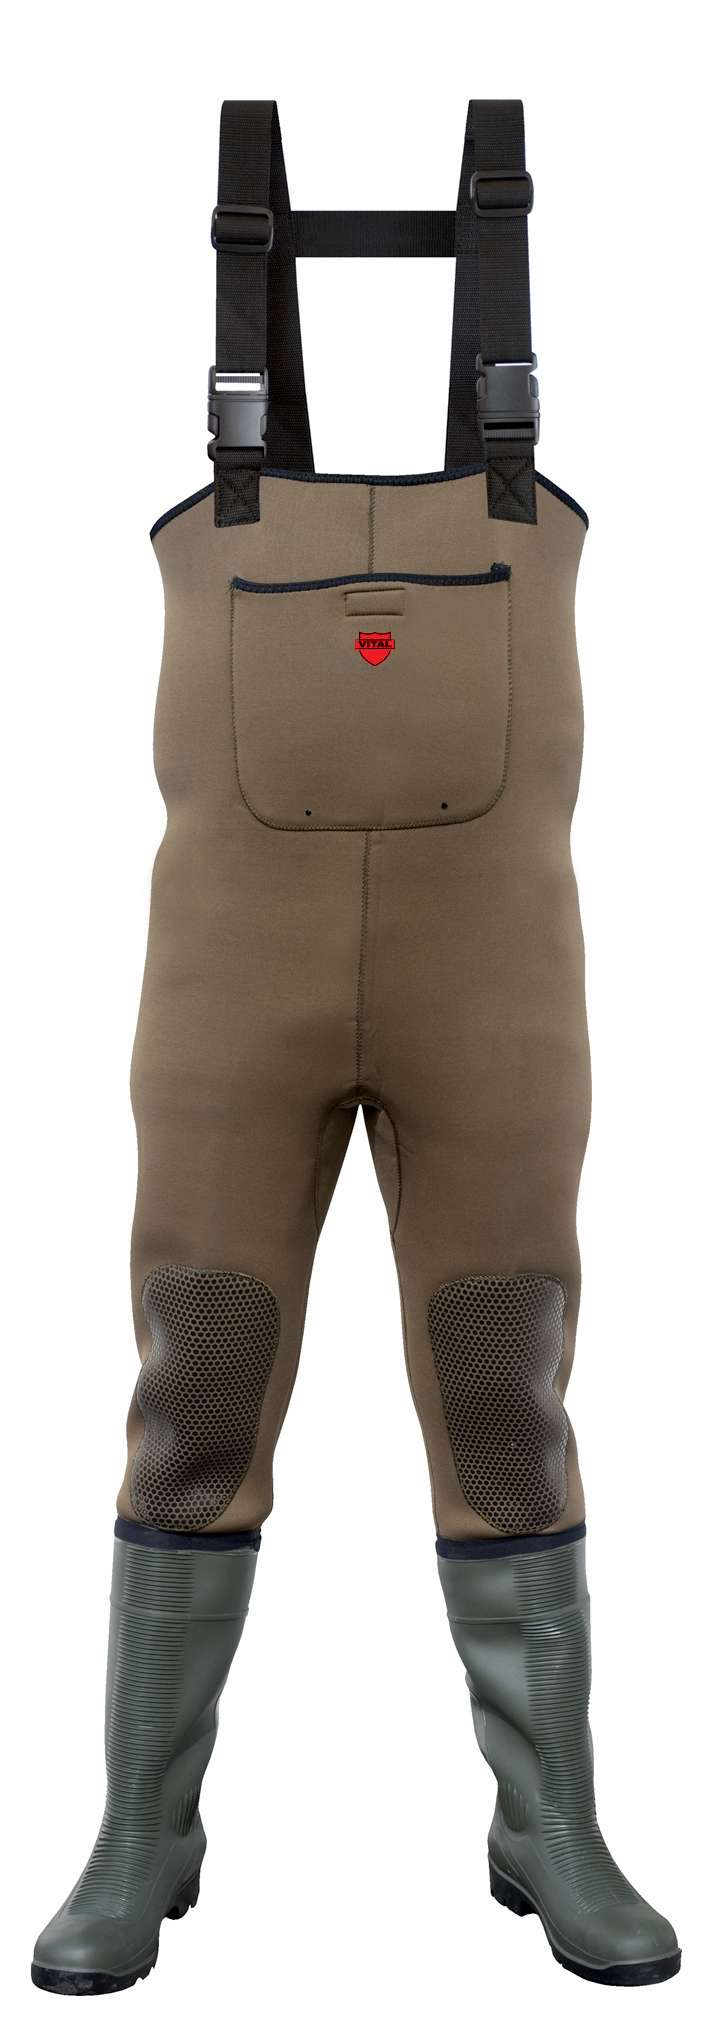 Vital severn green safety neoprene chest wader available in sizes 6